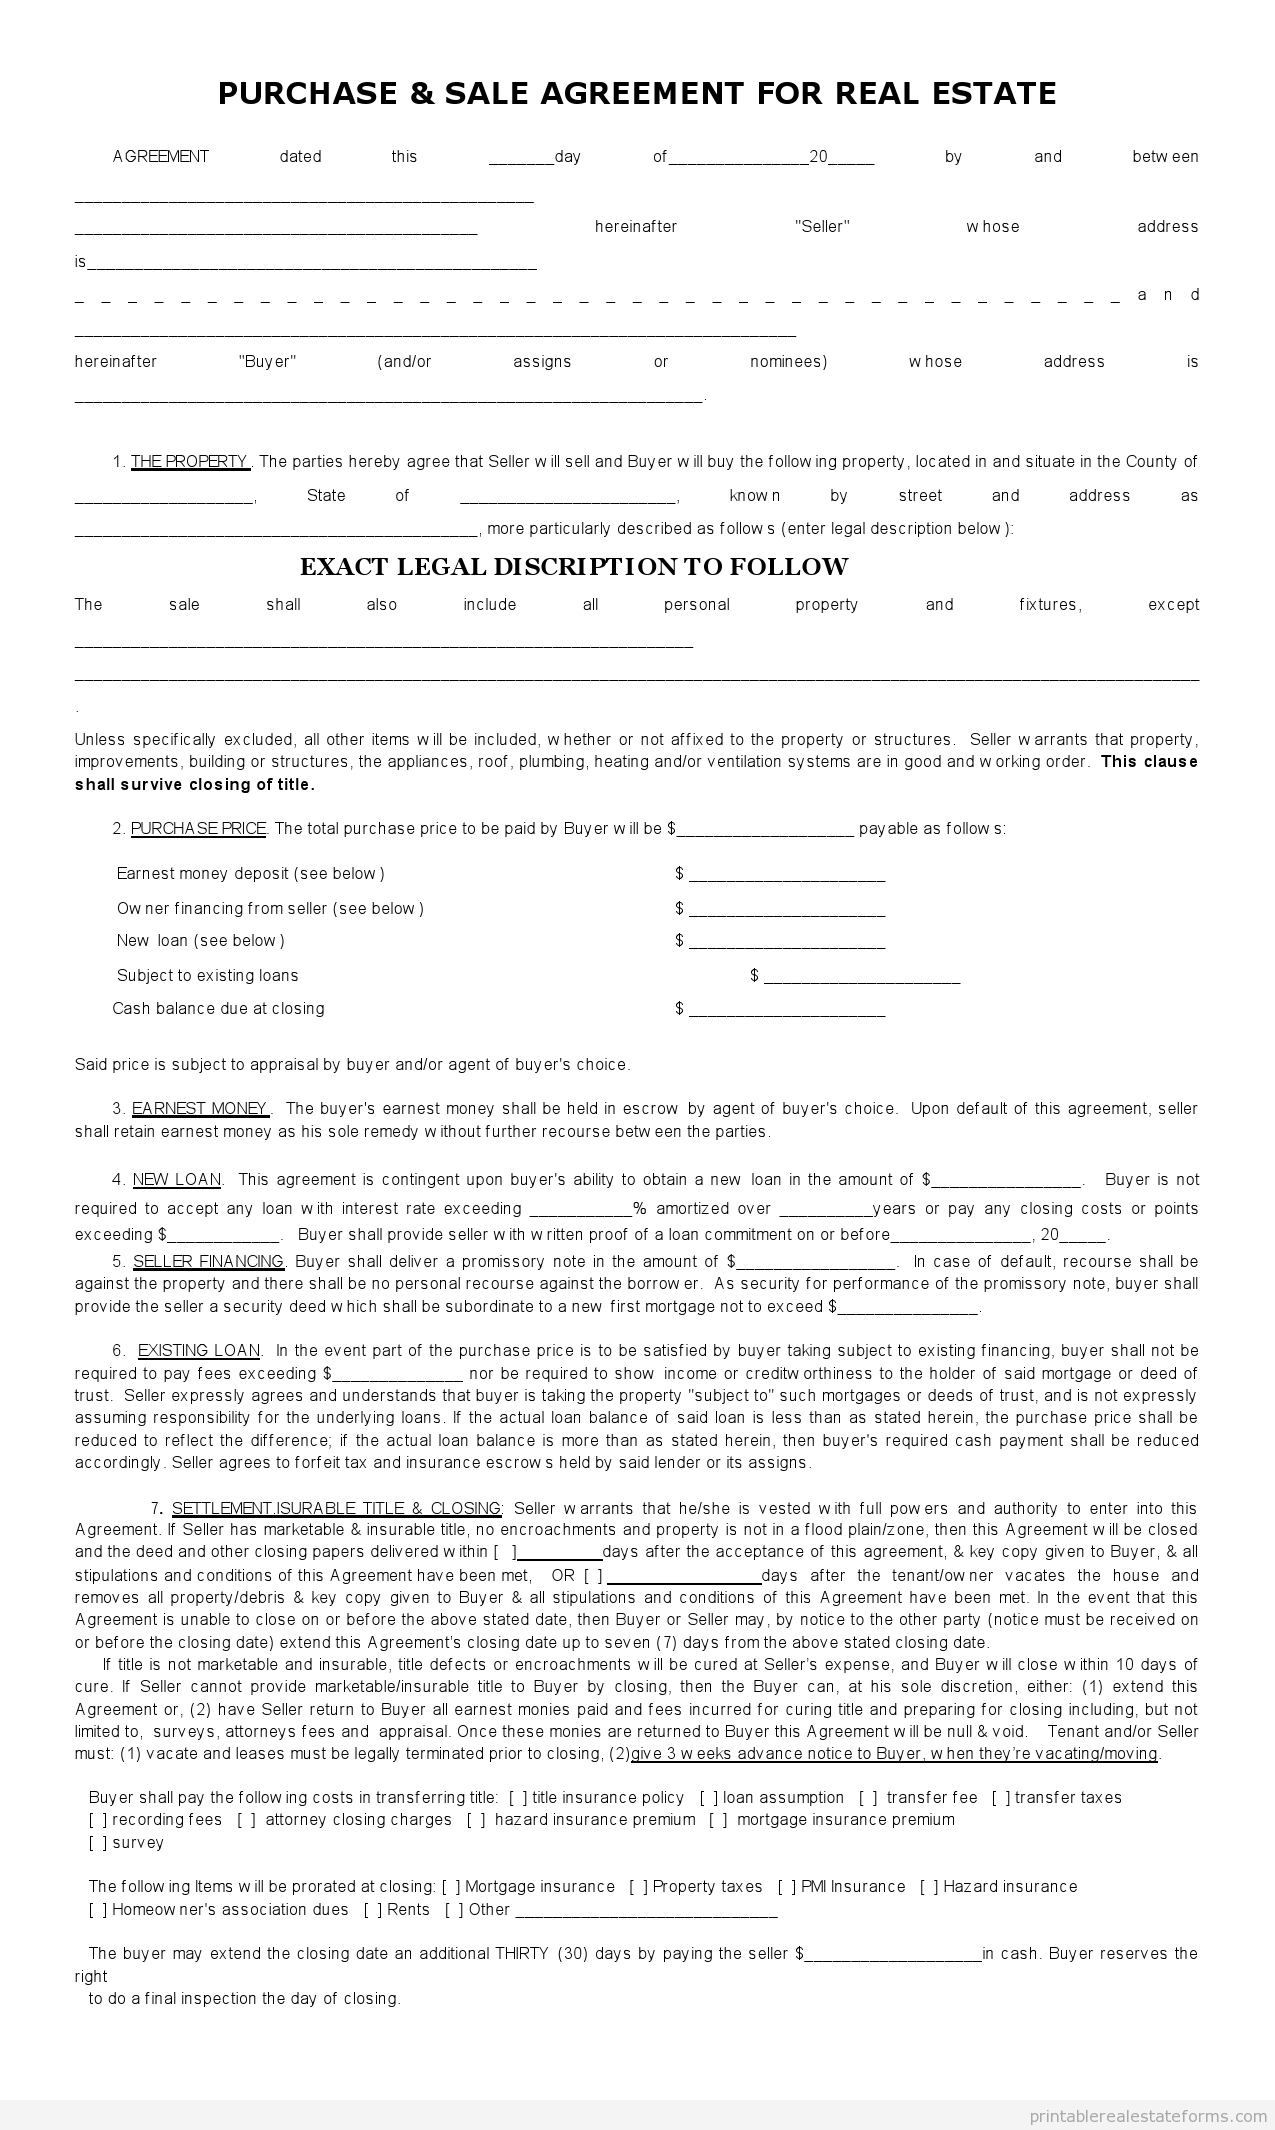 Home Purchase Agreement Template Printable Sample Sales Contract For Buying Subject To Form  Legal .